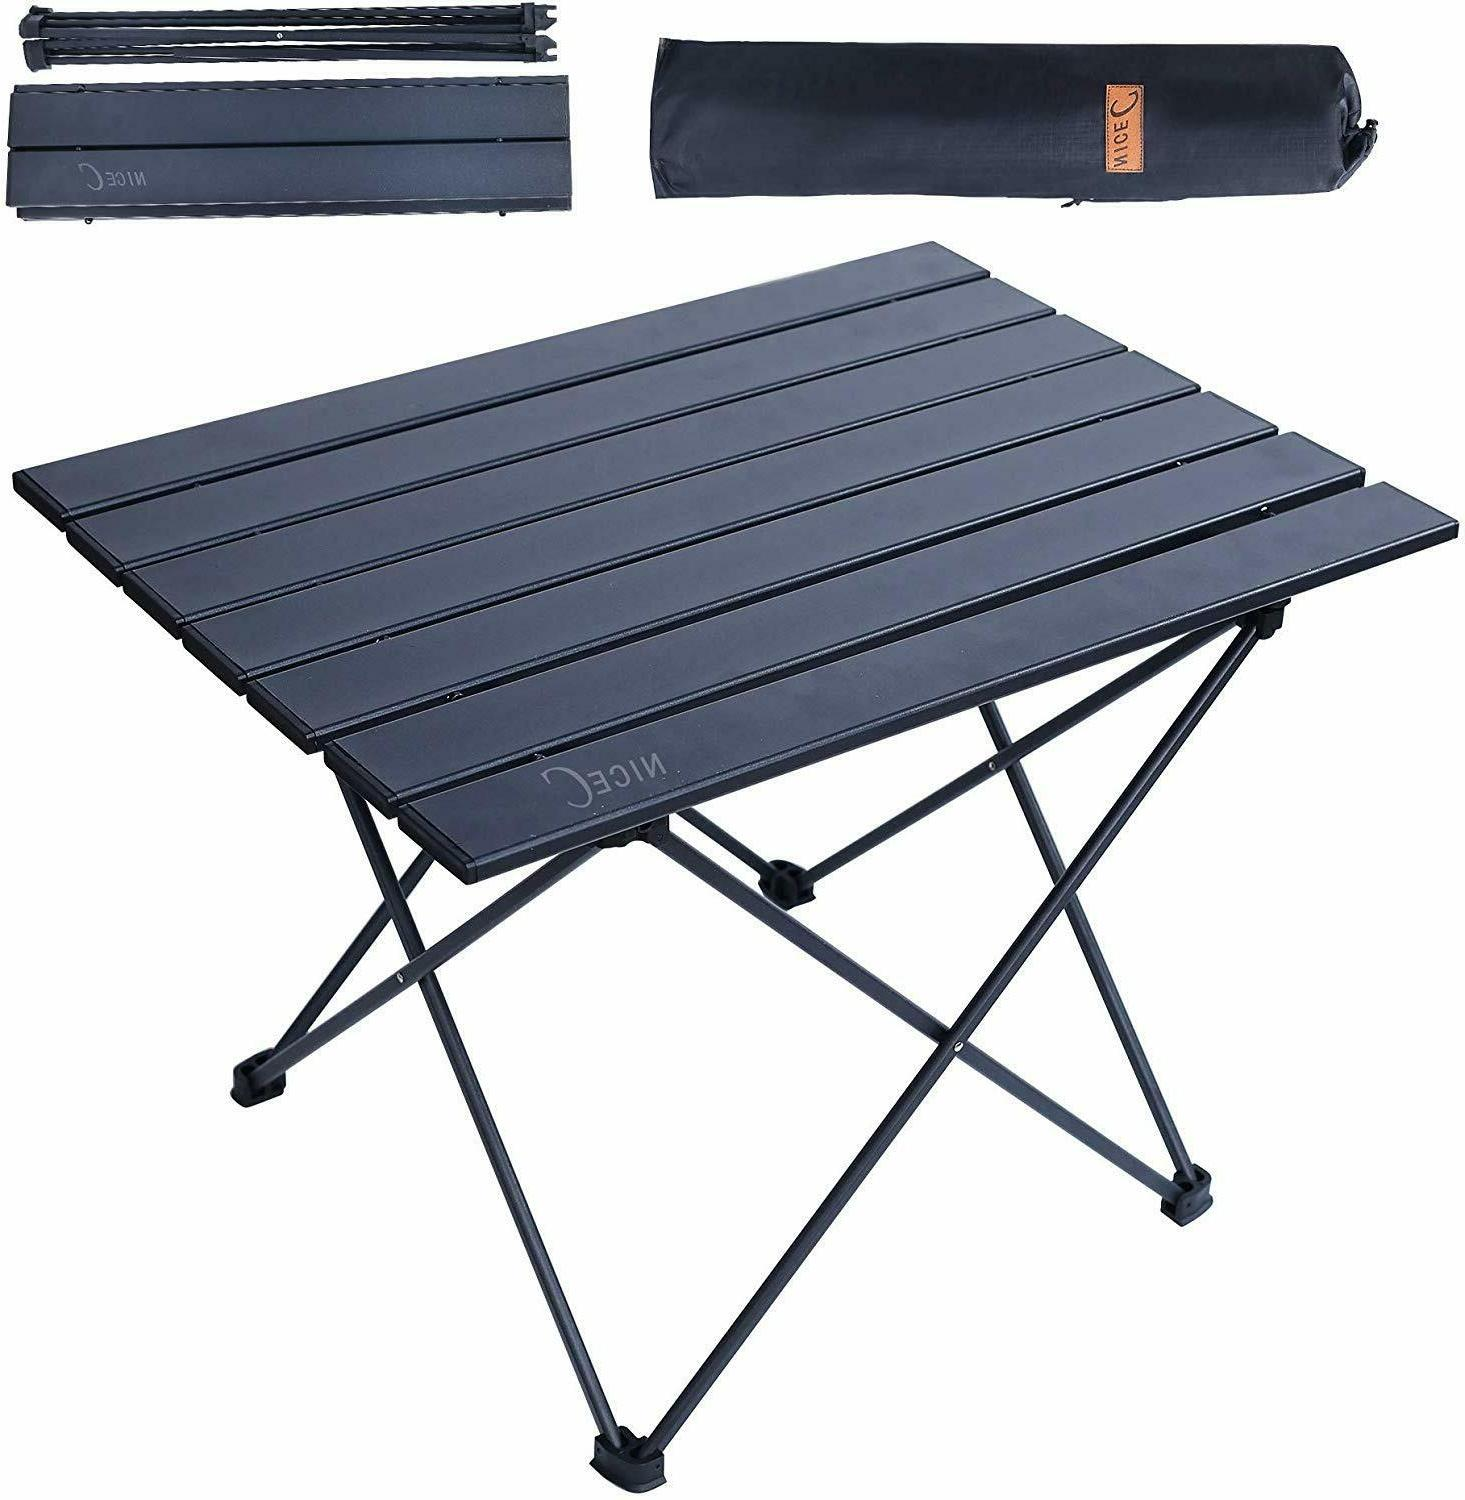 outdoor portable folding aluminum table lightweight camping